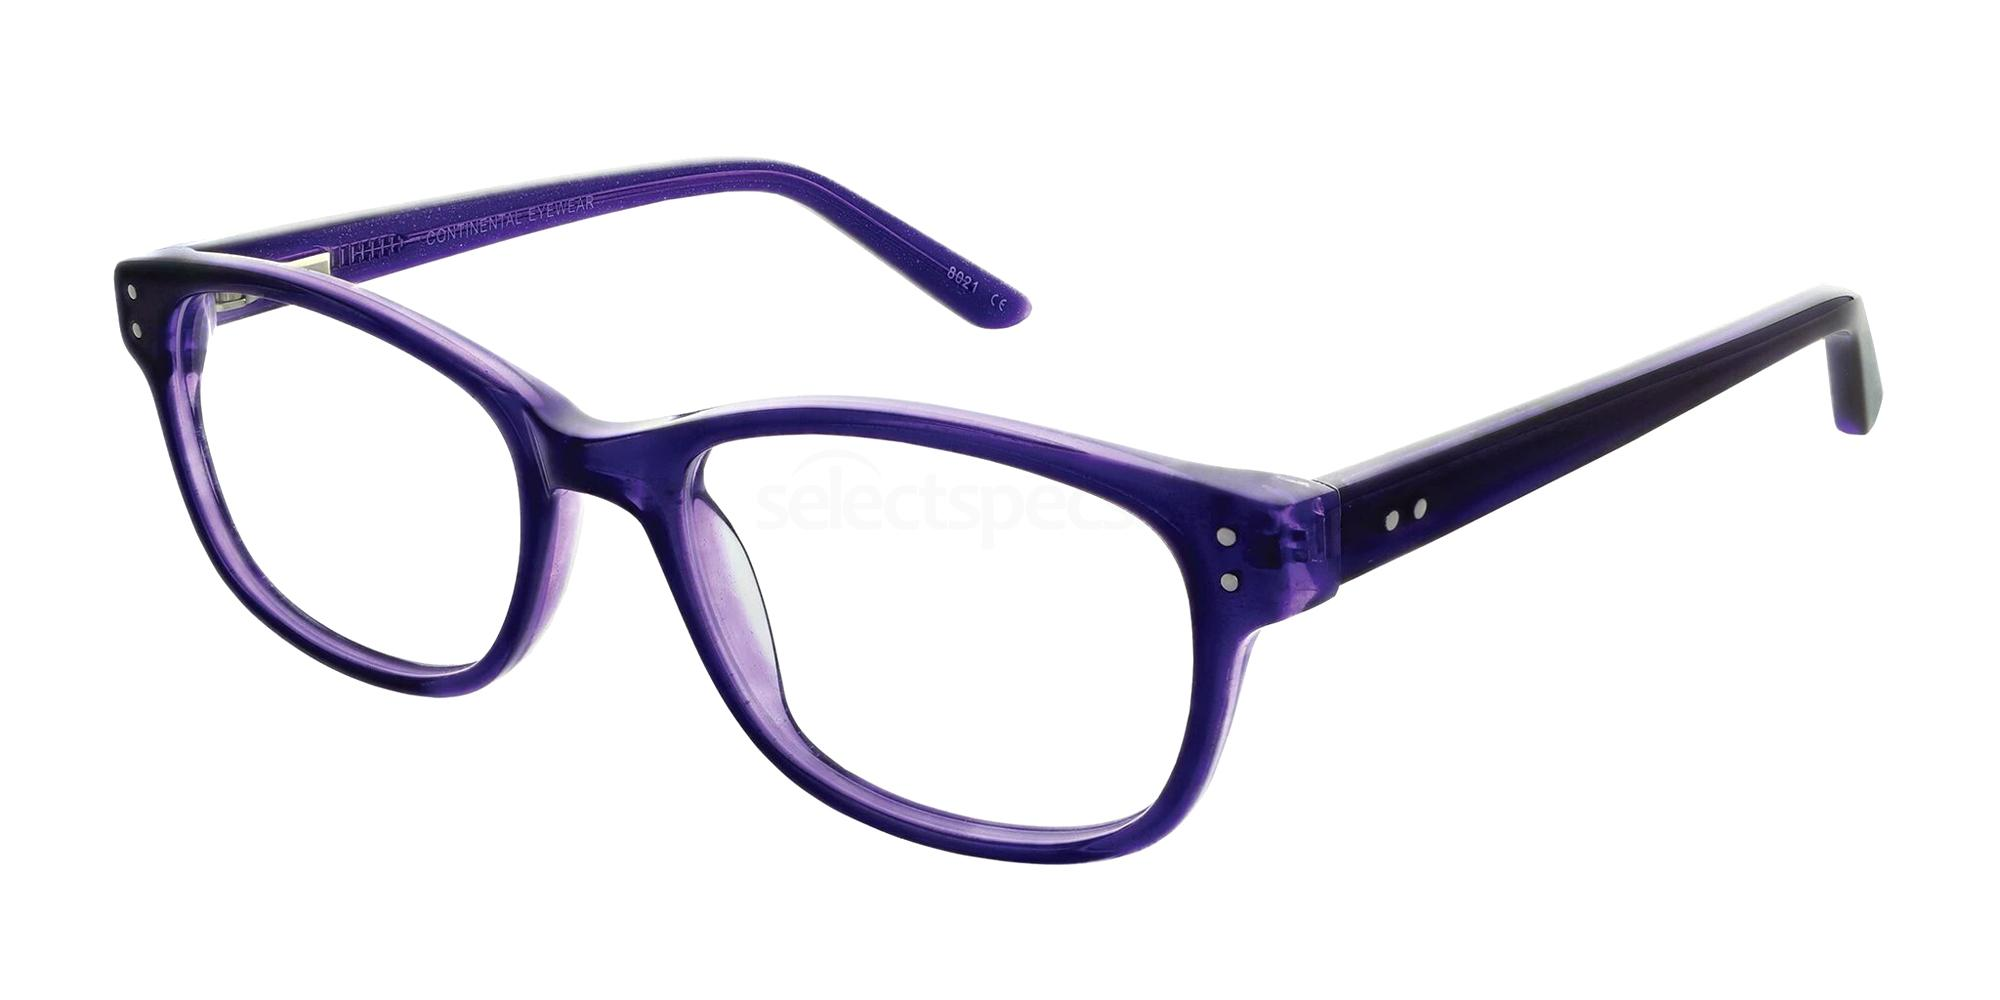 Purple 75 Glasses, Zenith Zest